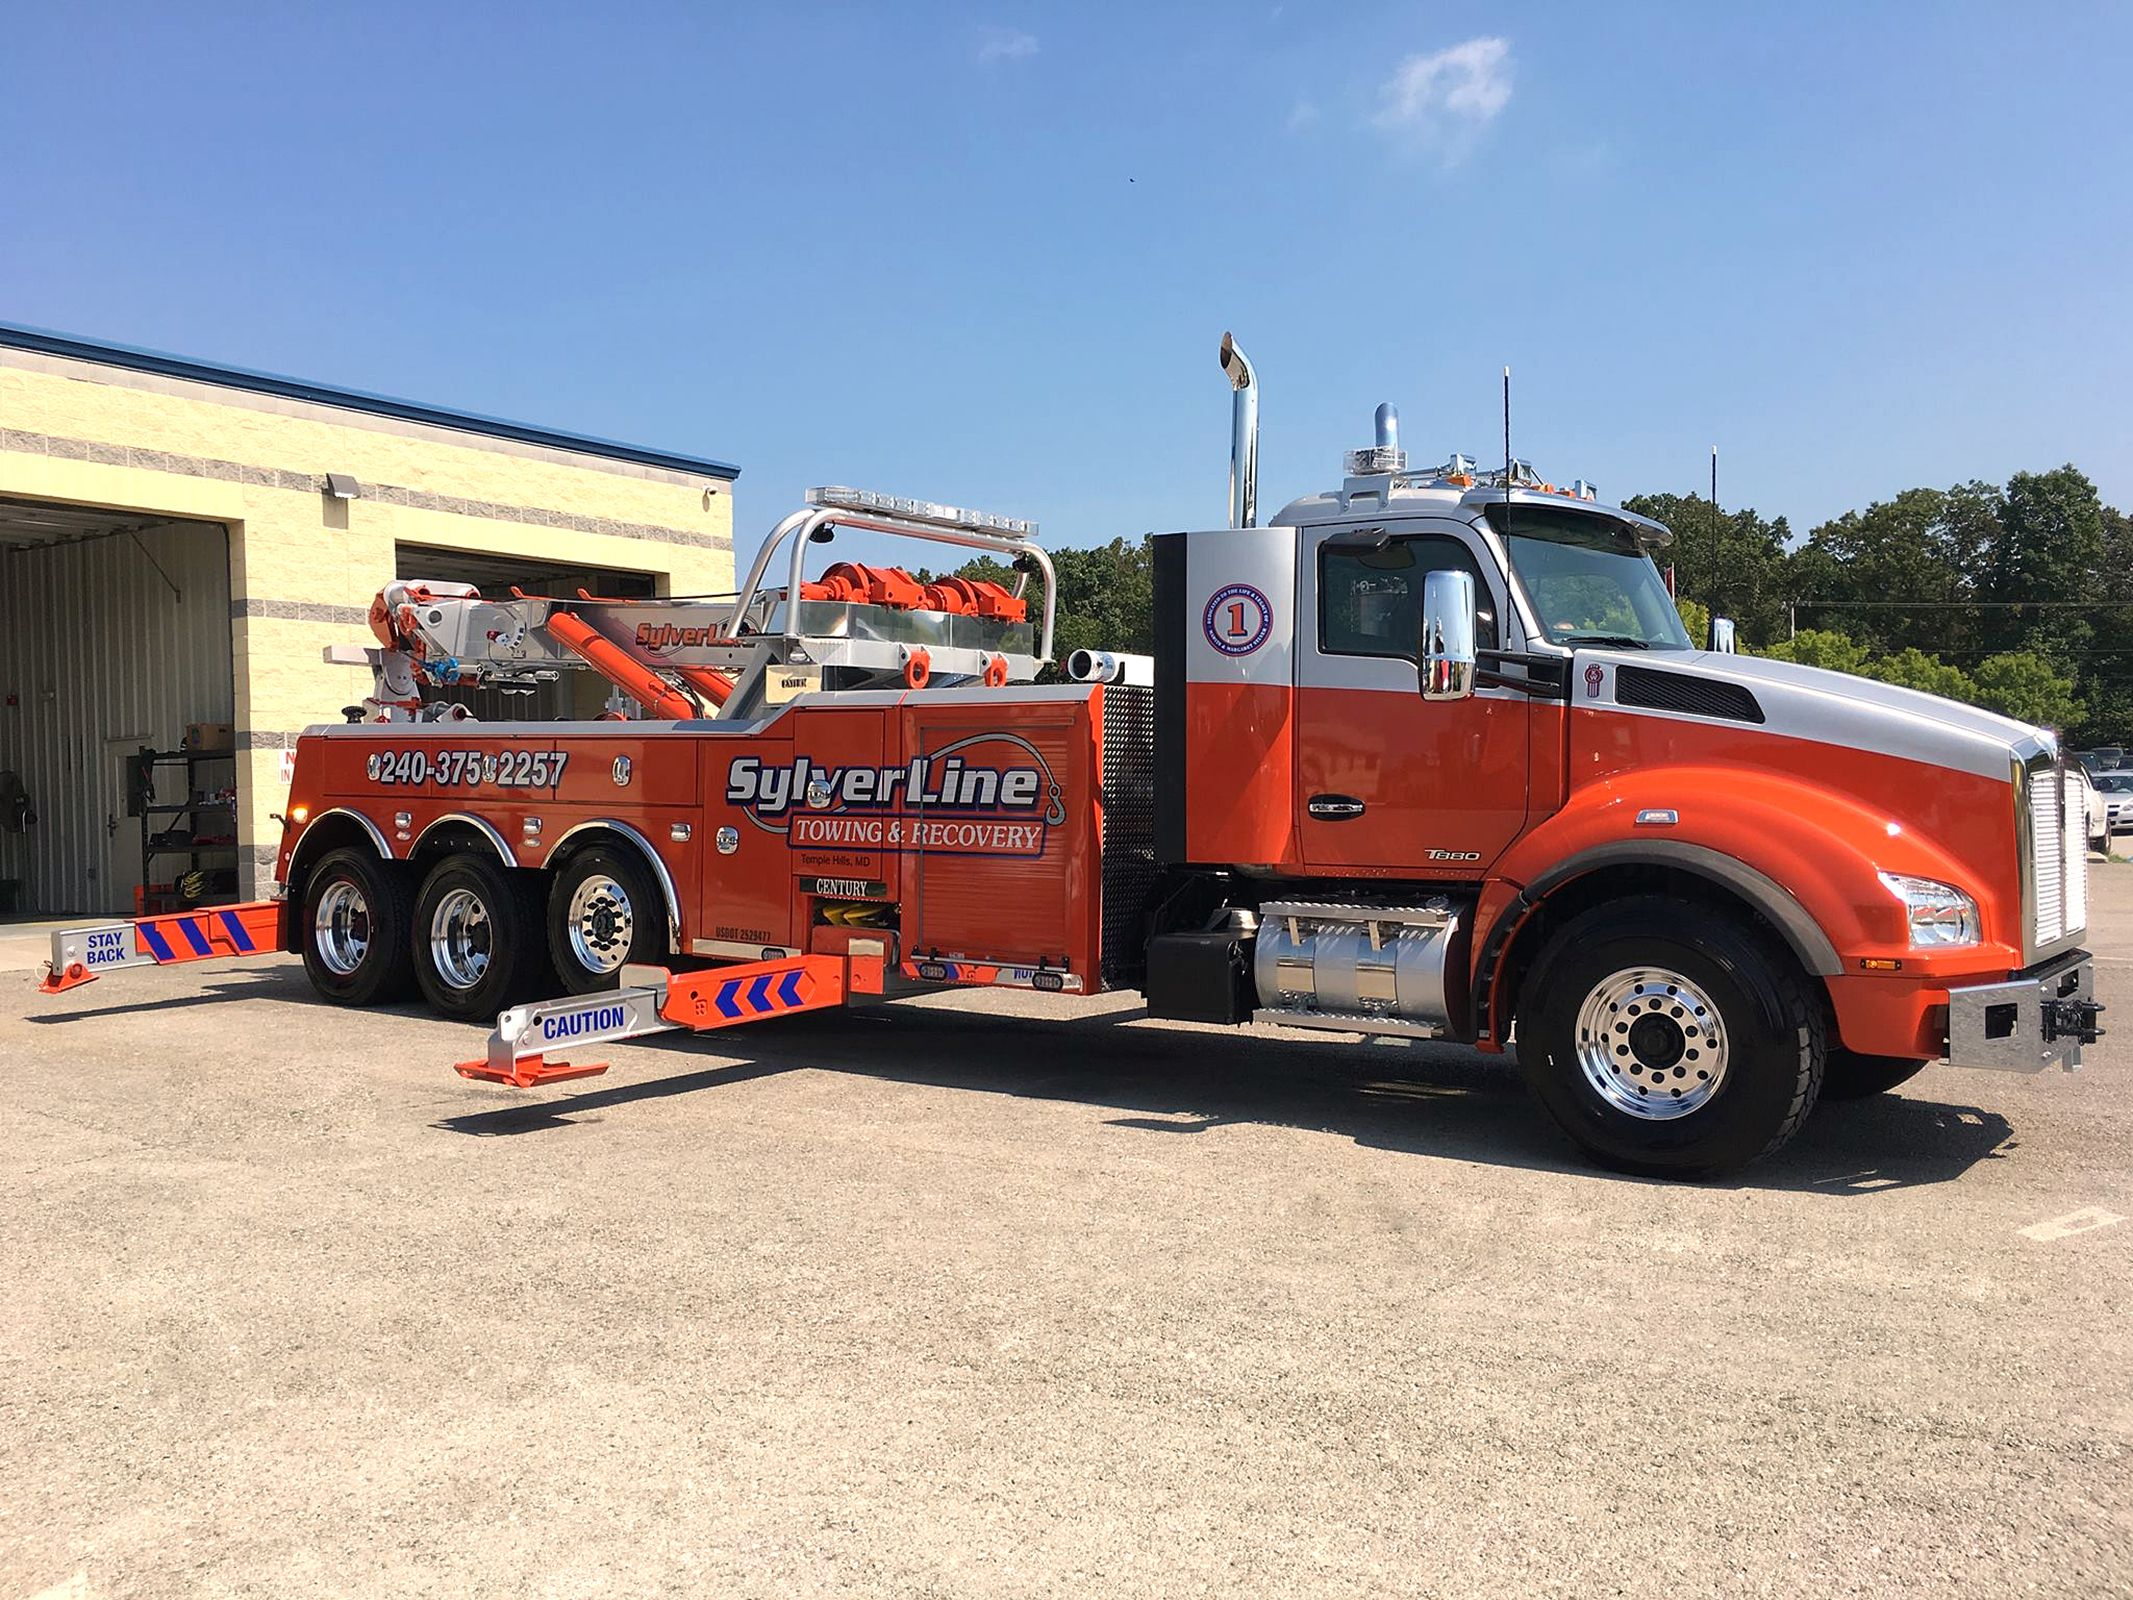 Tow Truck Sylverline Towing Recovery Tow Truck Towing And Recovery Trucks